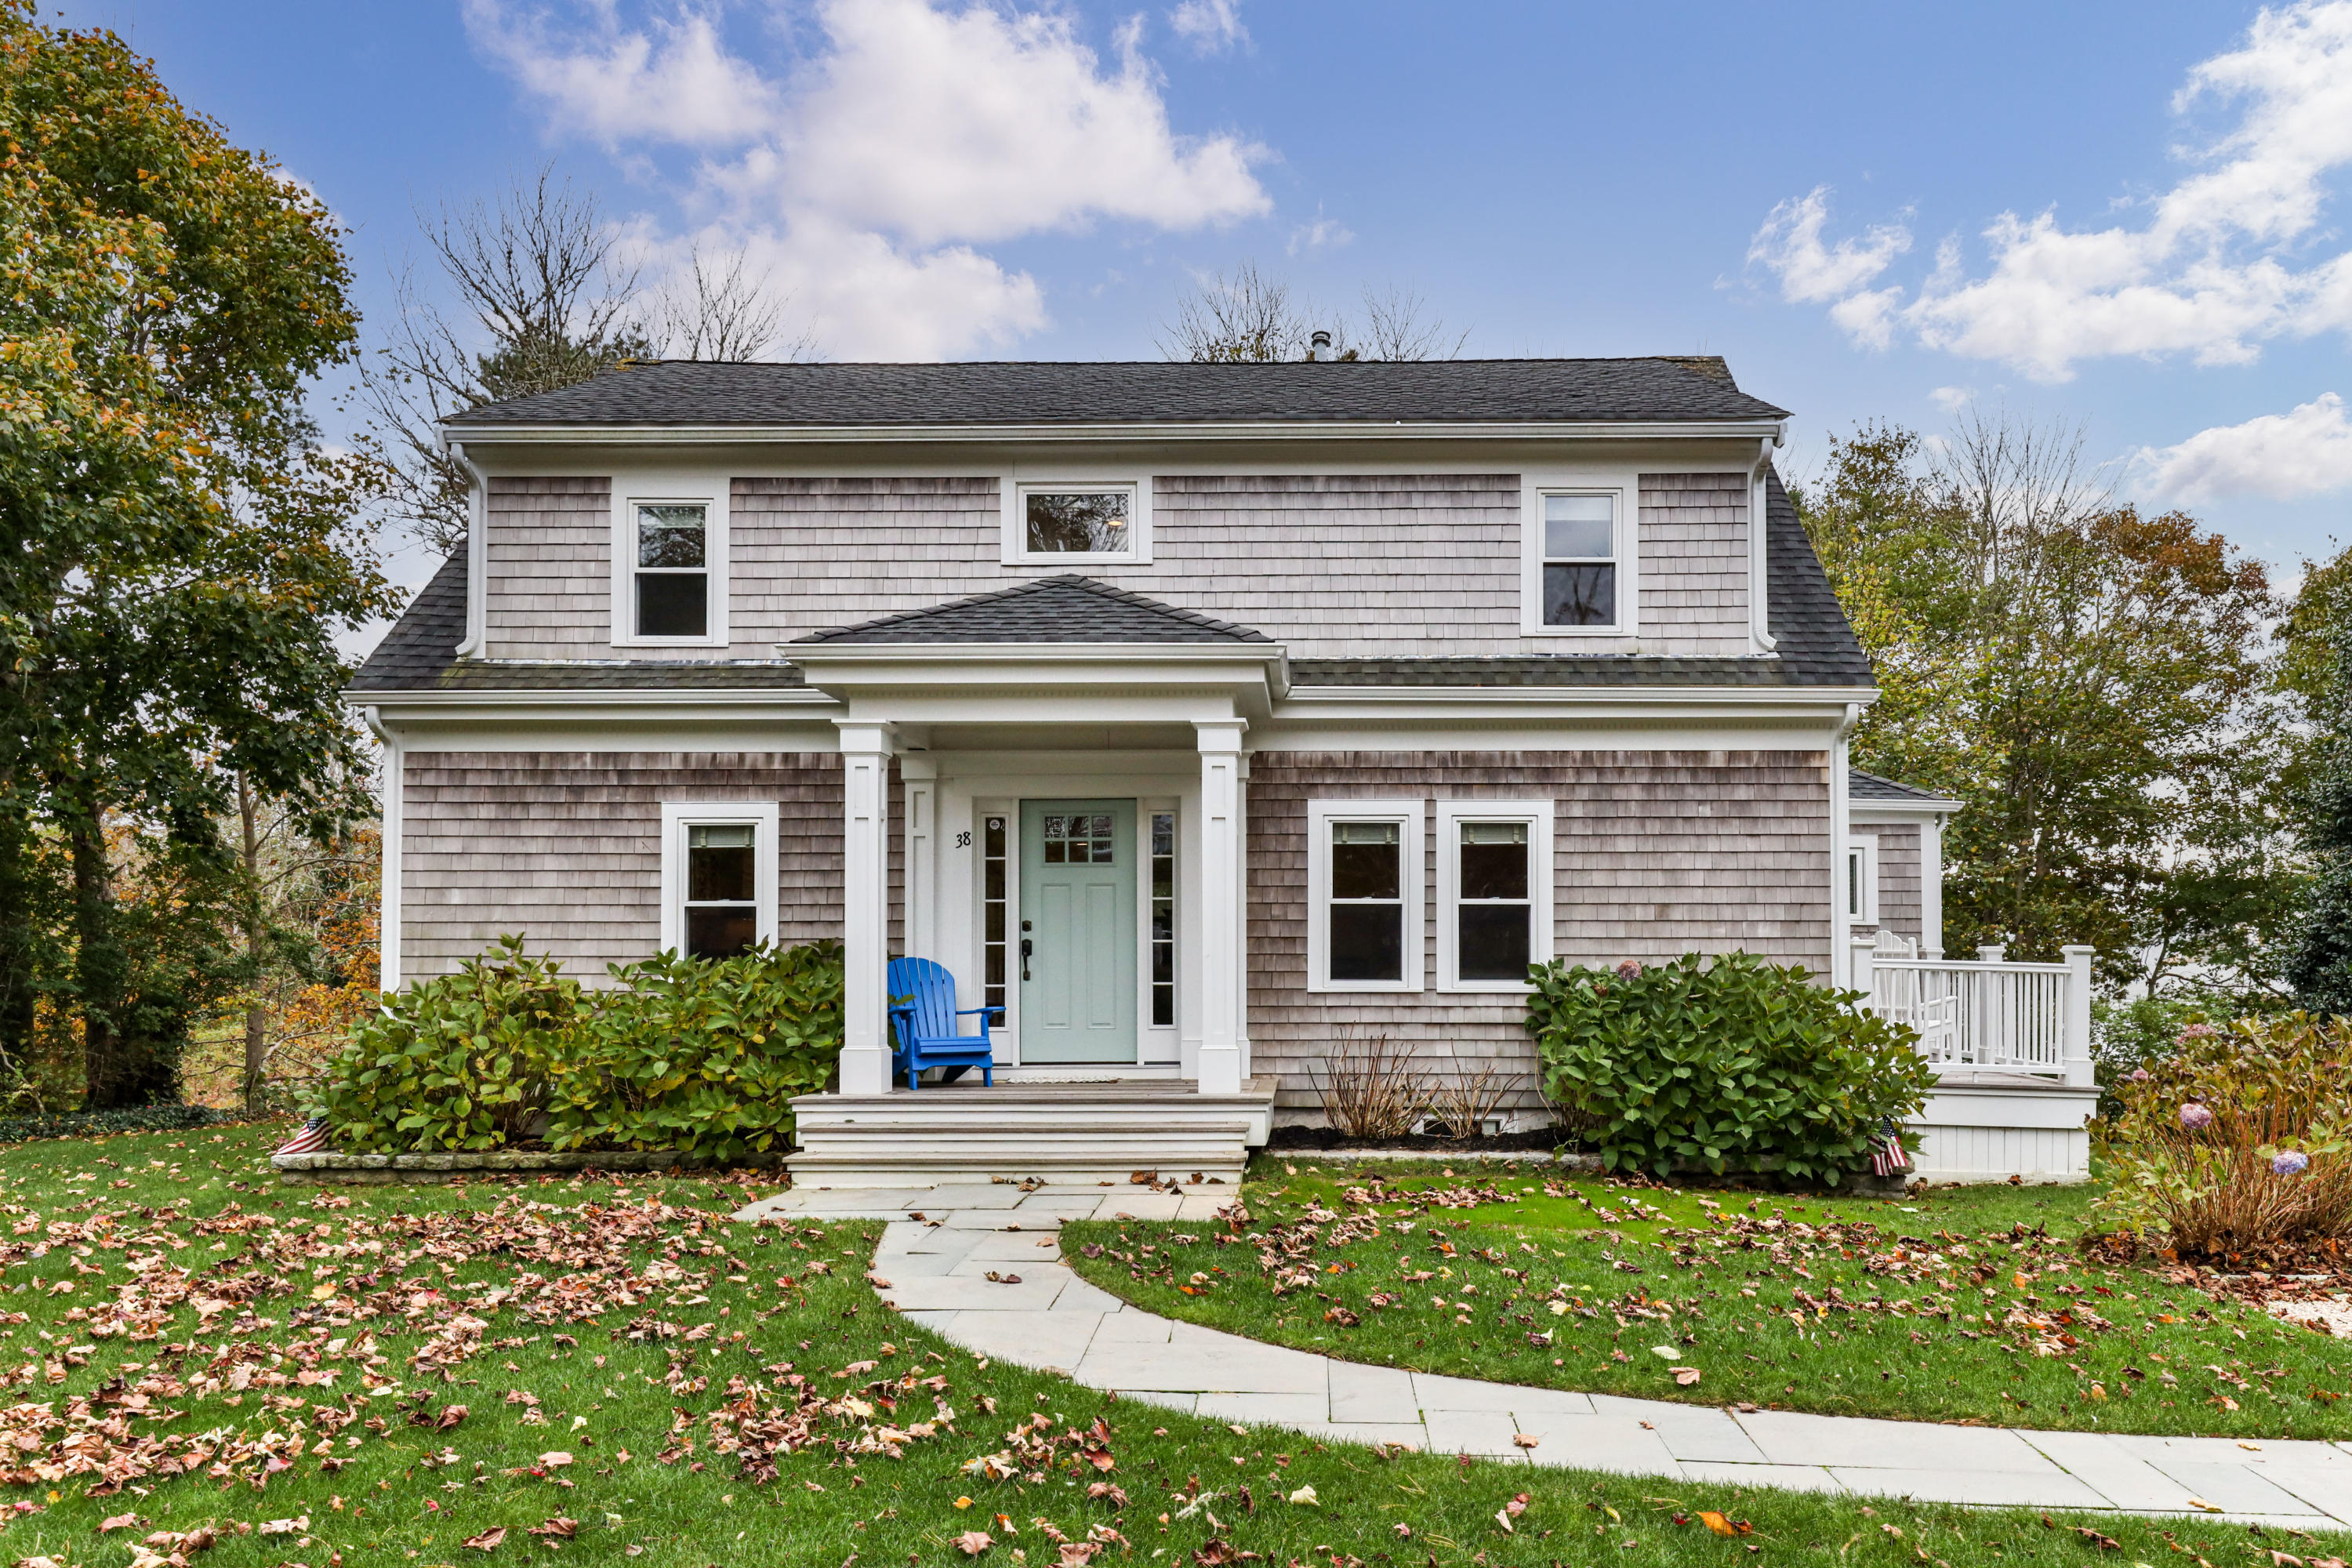 click to view more details 38 Dugans Pond Road, Chatham, MA 02633